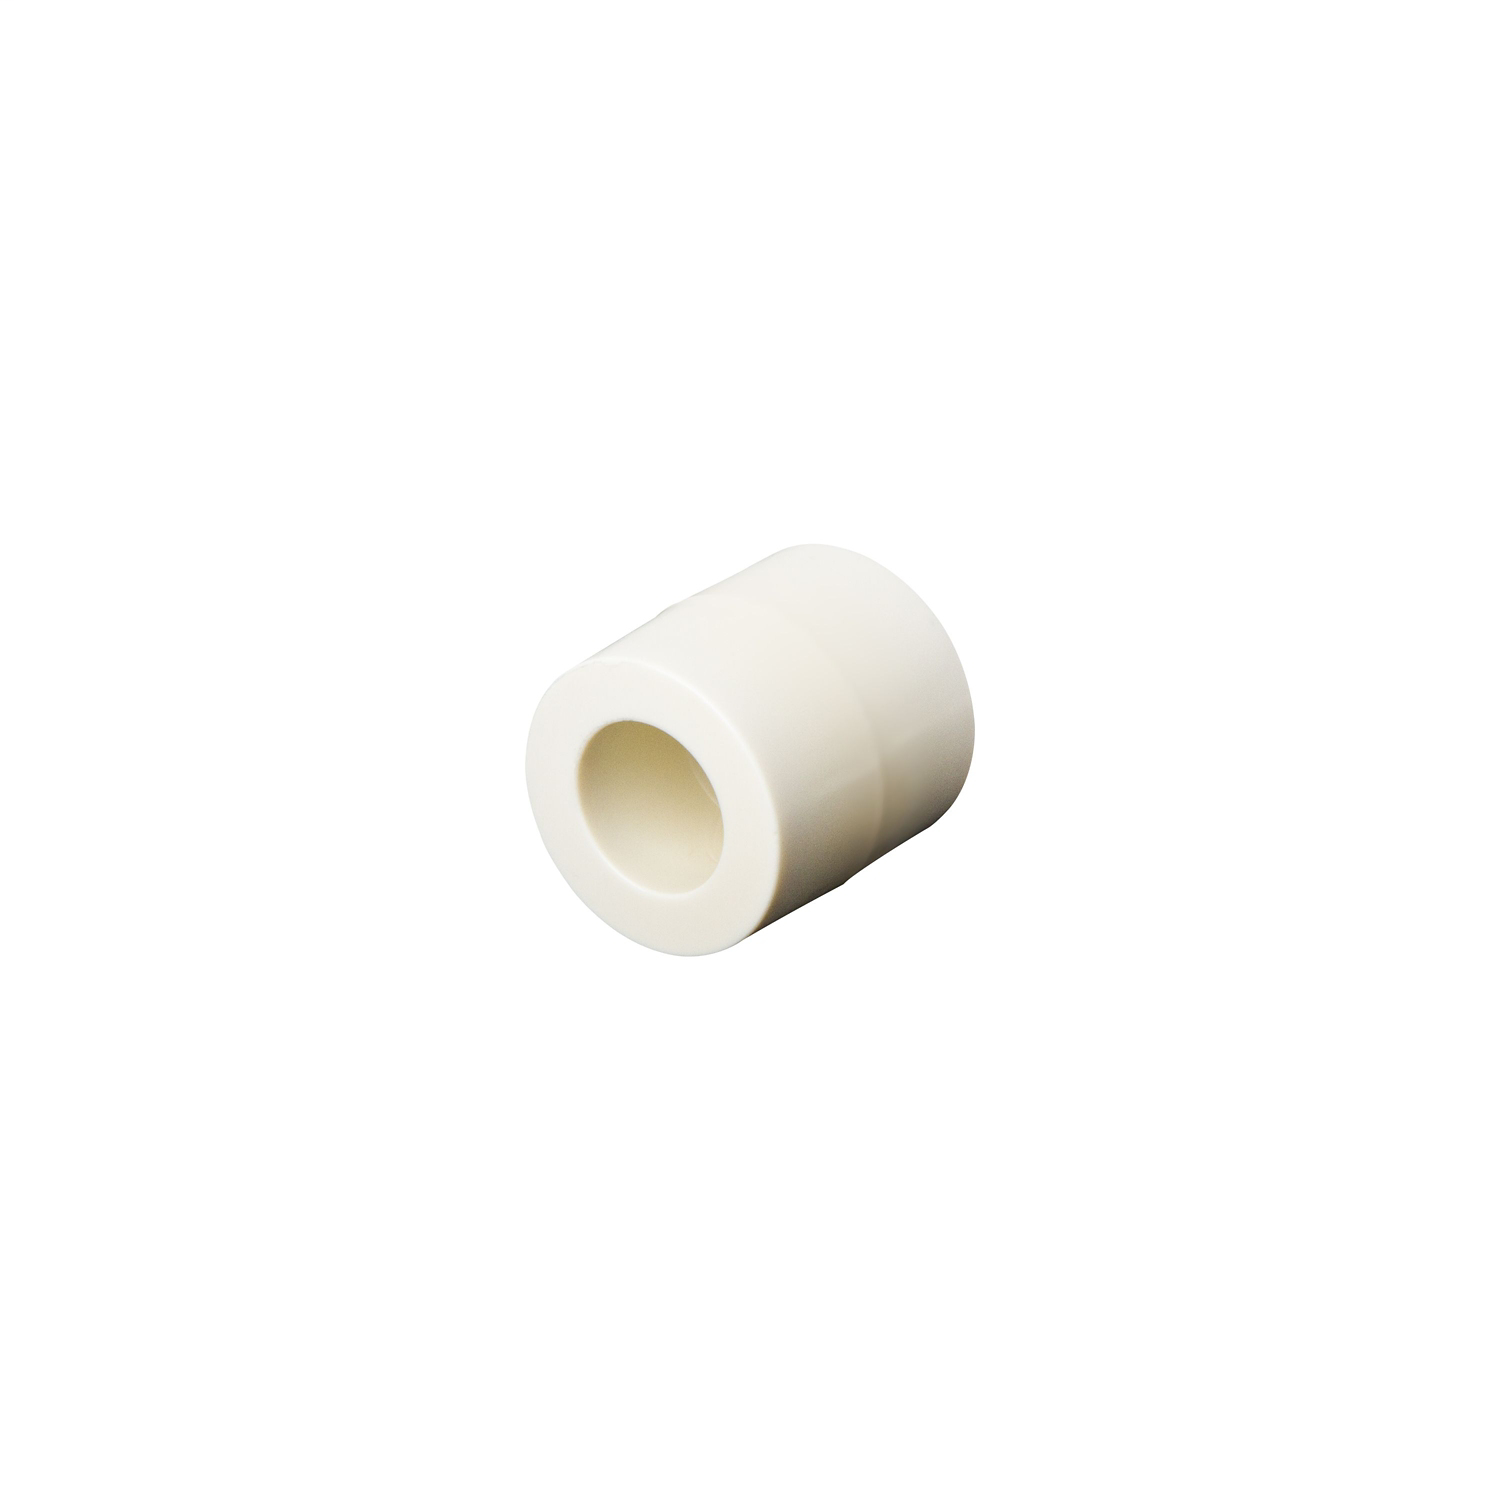 Microbial Resistant Wall Offset, Height 1 Inch, Length 1 Inch, Width 1 Inch, For use with 3/8 Inch Bolts, Material Nylon